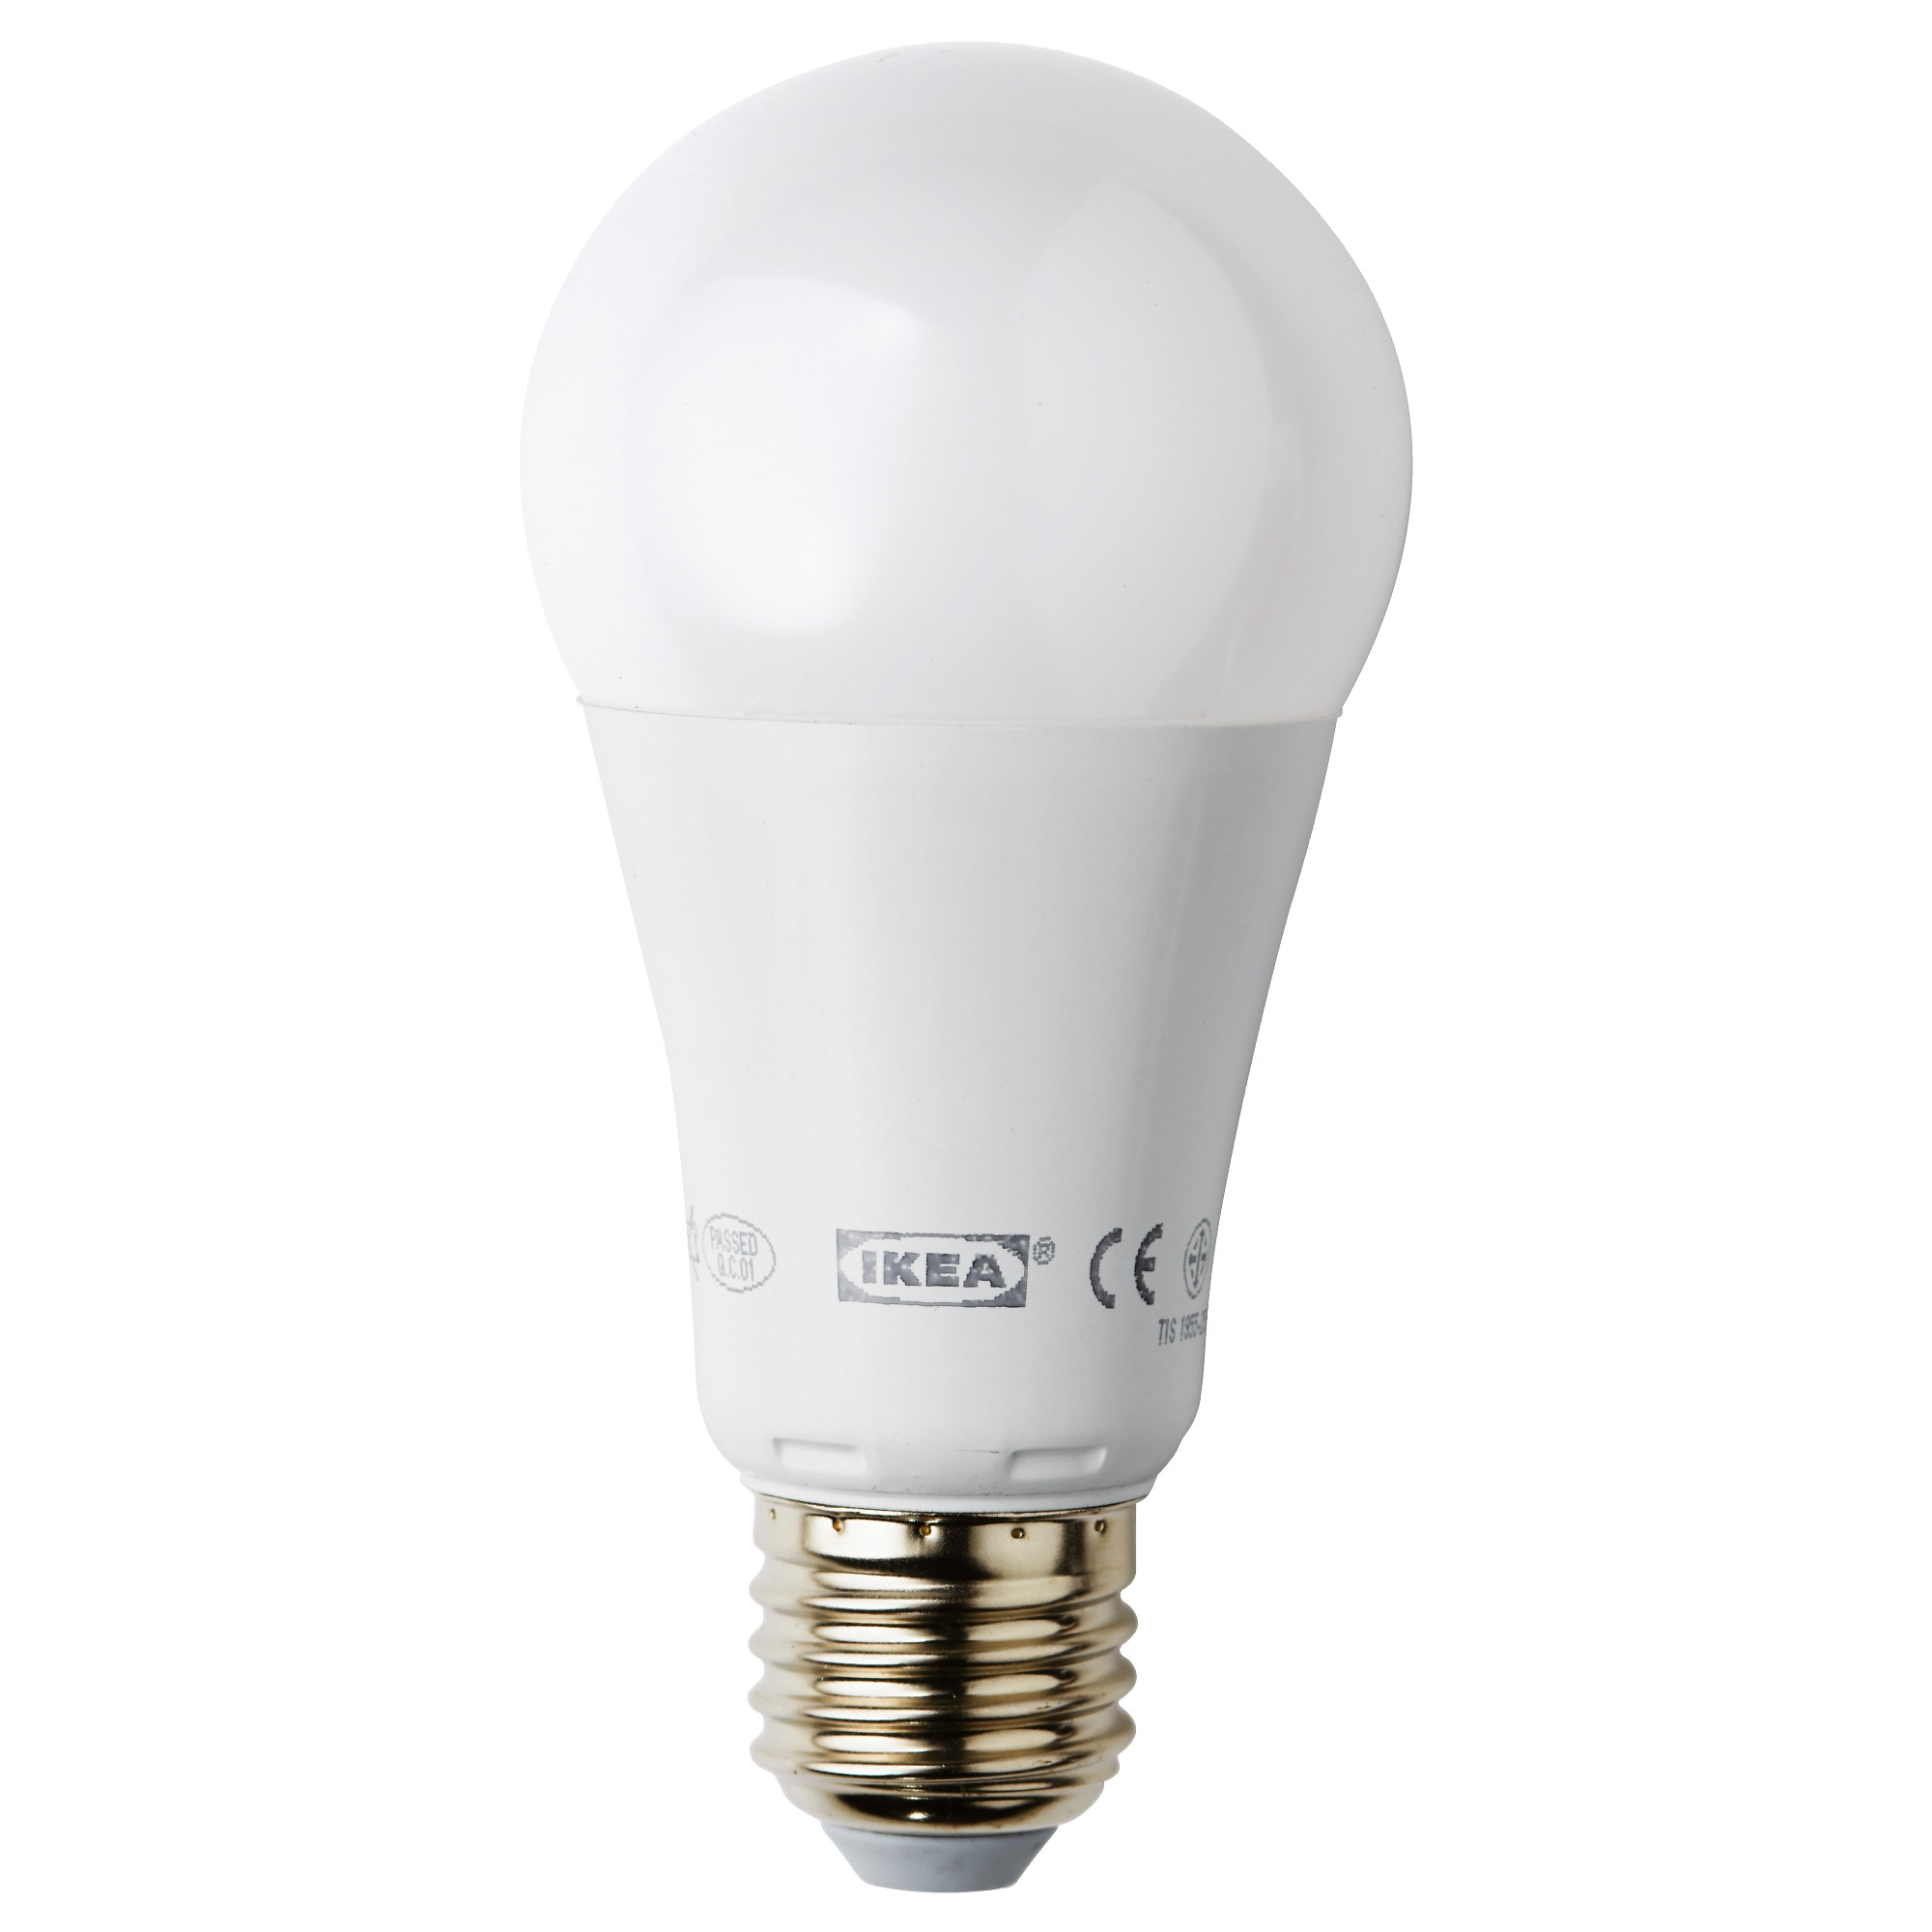 LEDARE LED bulb E26 1000 lumen, dimmable, globe globe opal Luminous flux:  1000